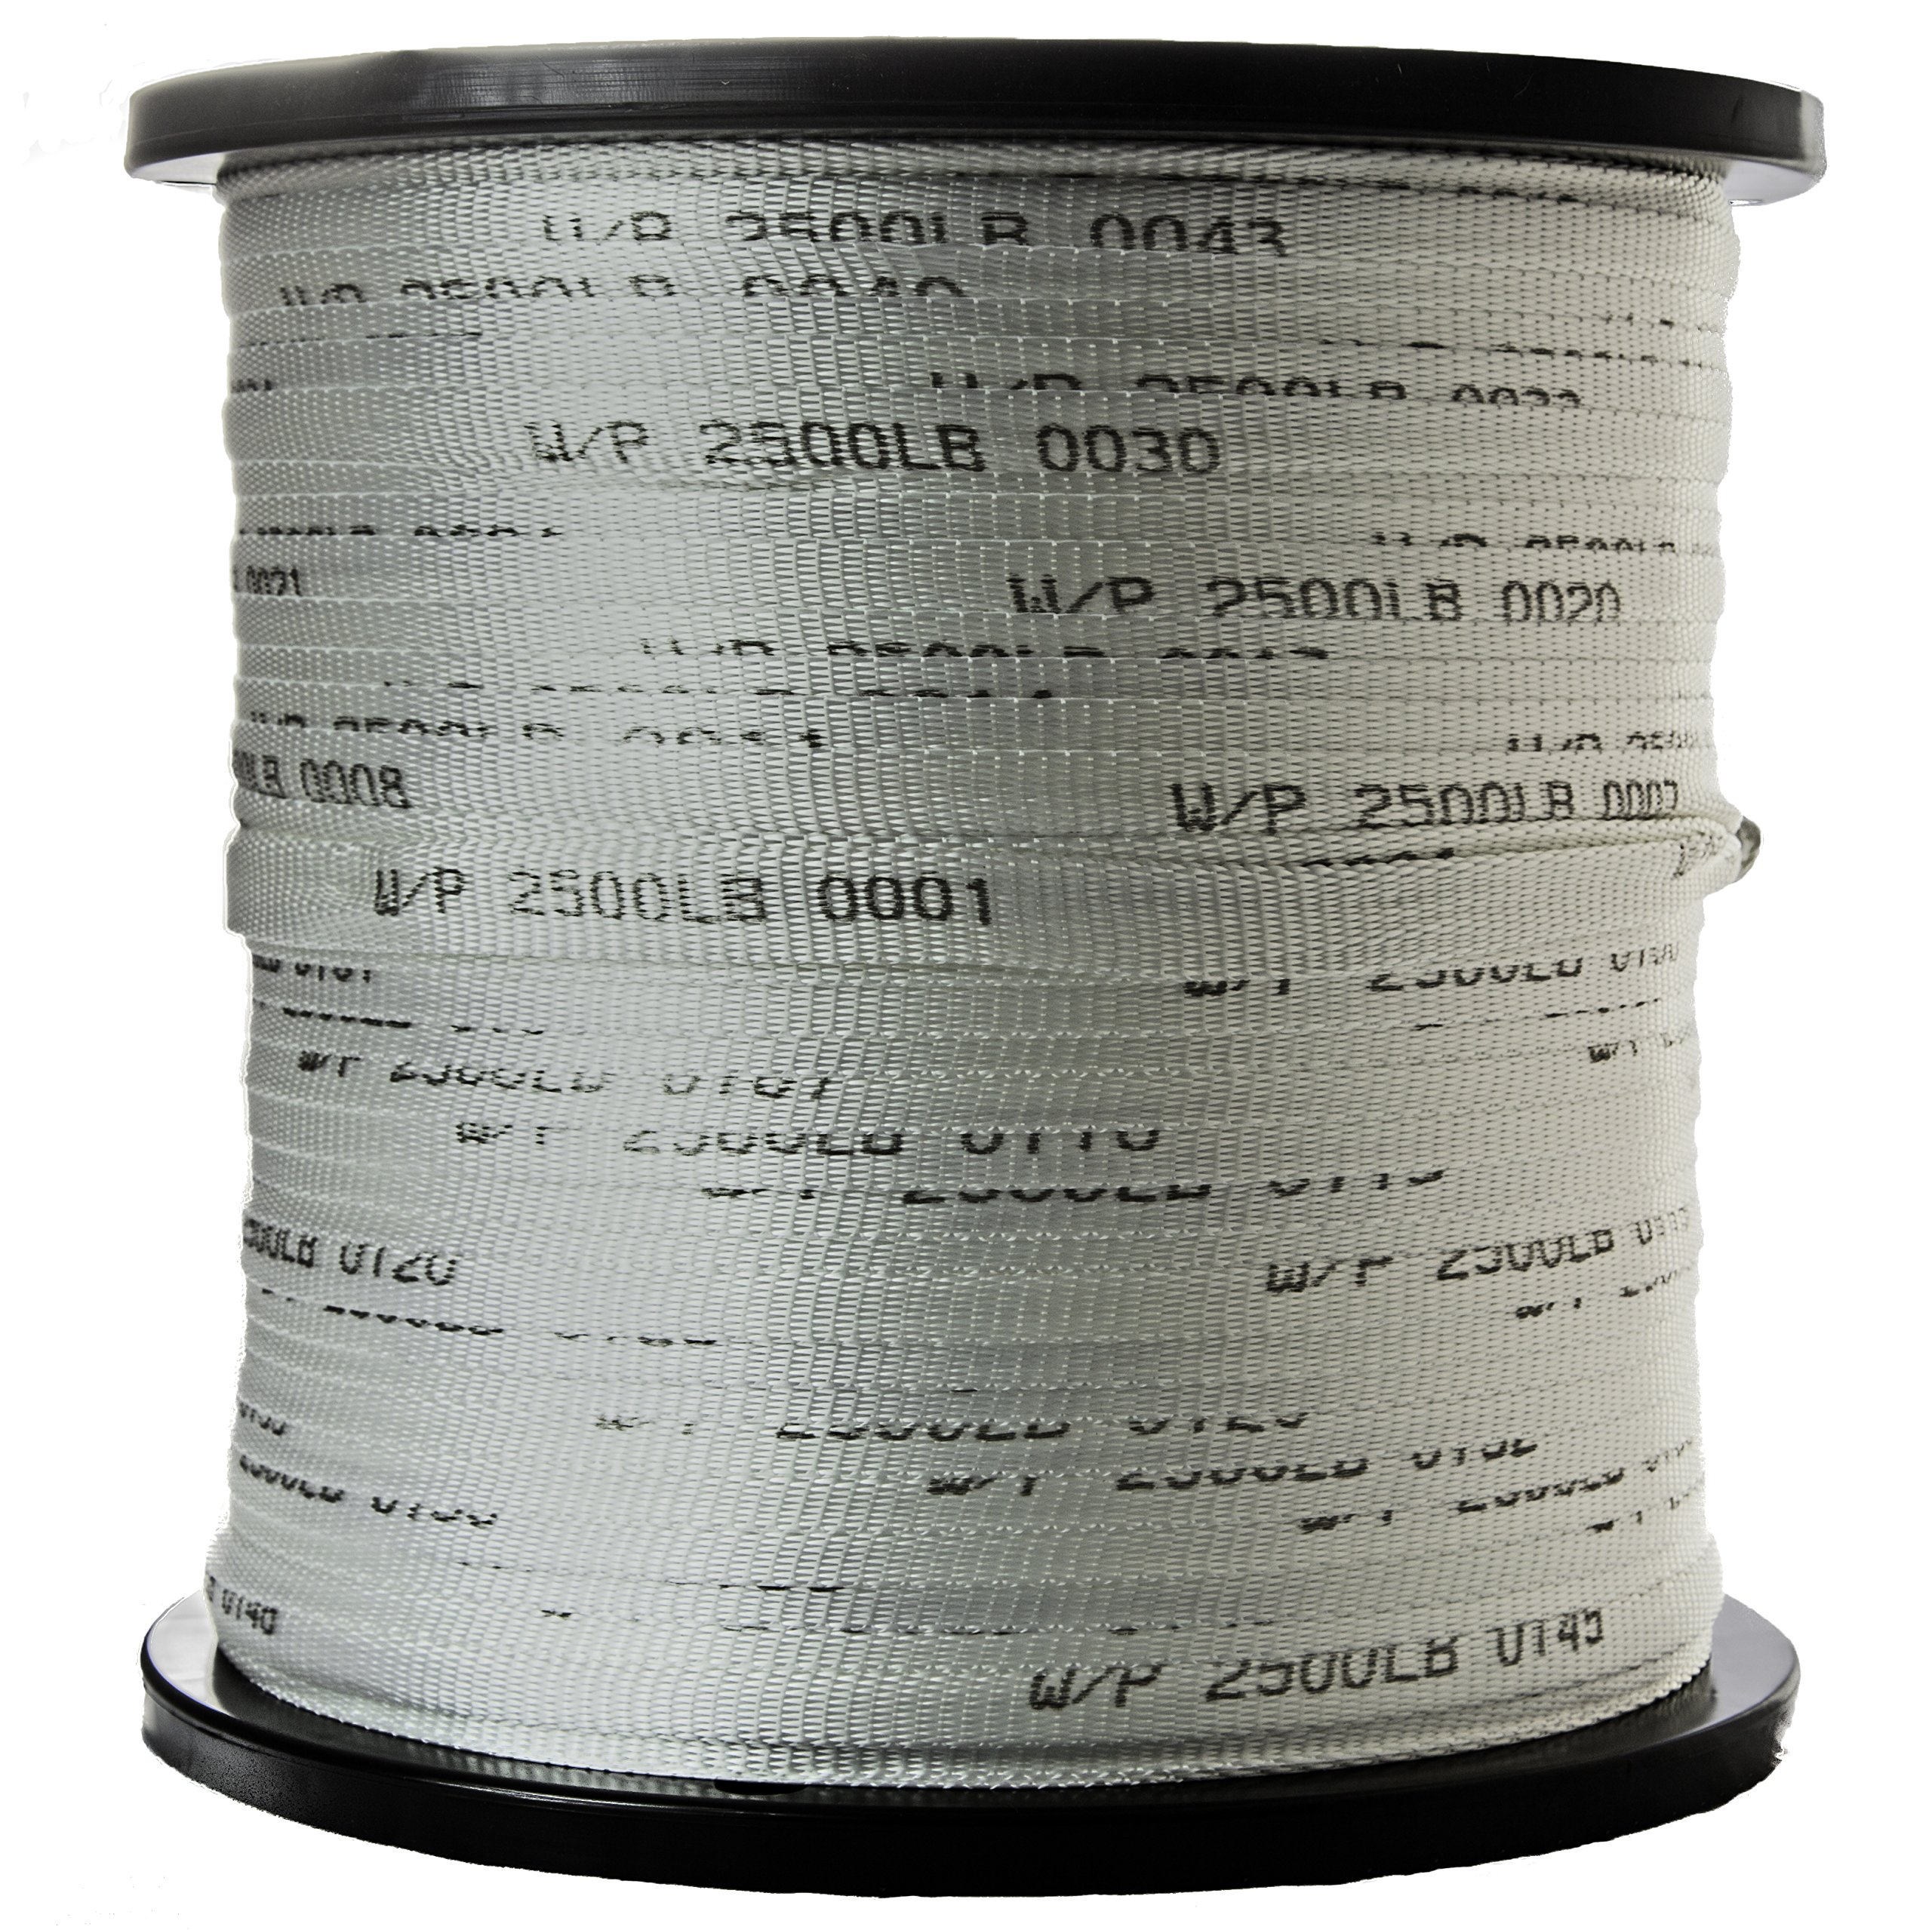 3/4'' x 5000' 2500 Lb Polyester Pull Tape / Pulling Tape - USA Made (1000', 3000', & 5000' Options) by The Ribbon Factory